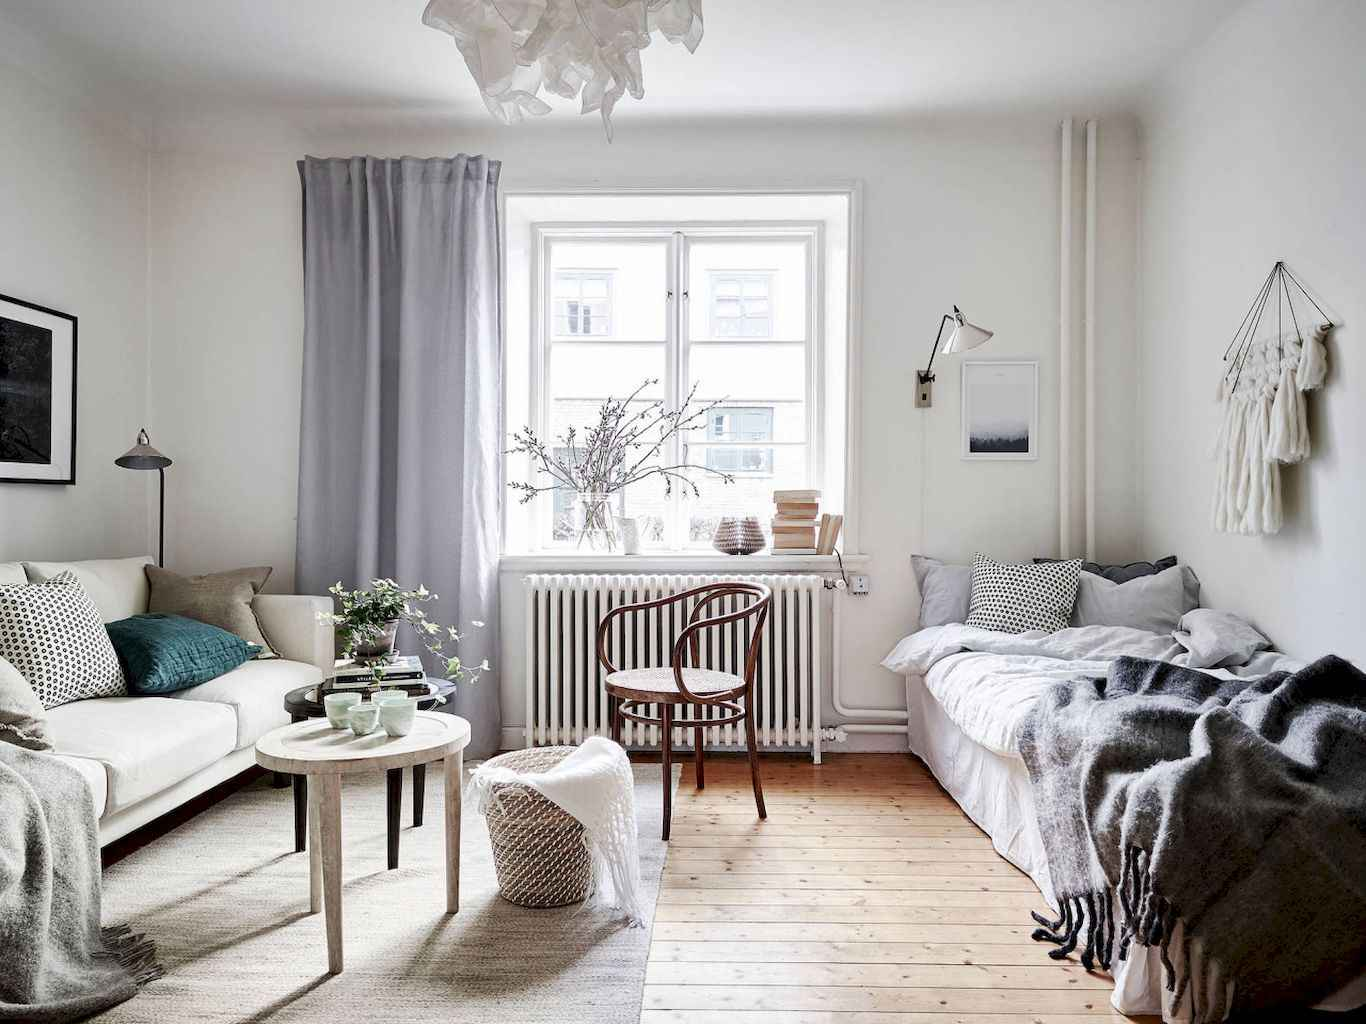 Cool small apartment decorating ideas on a budget (2)